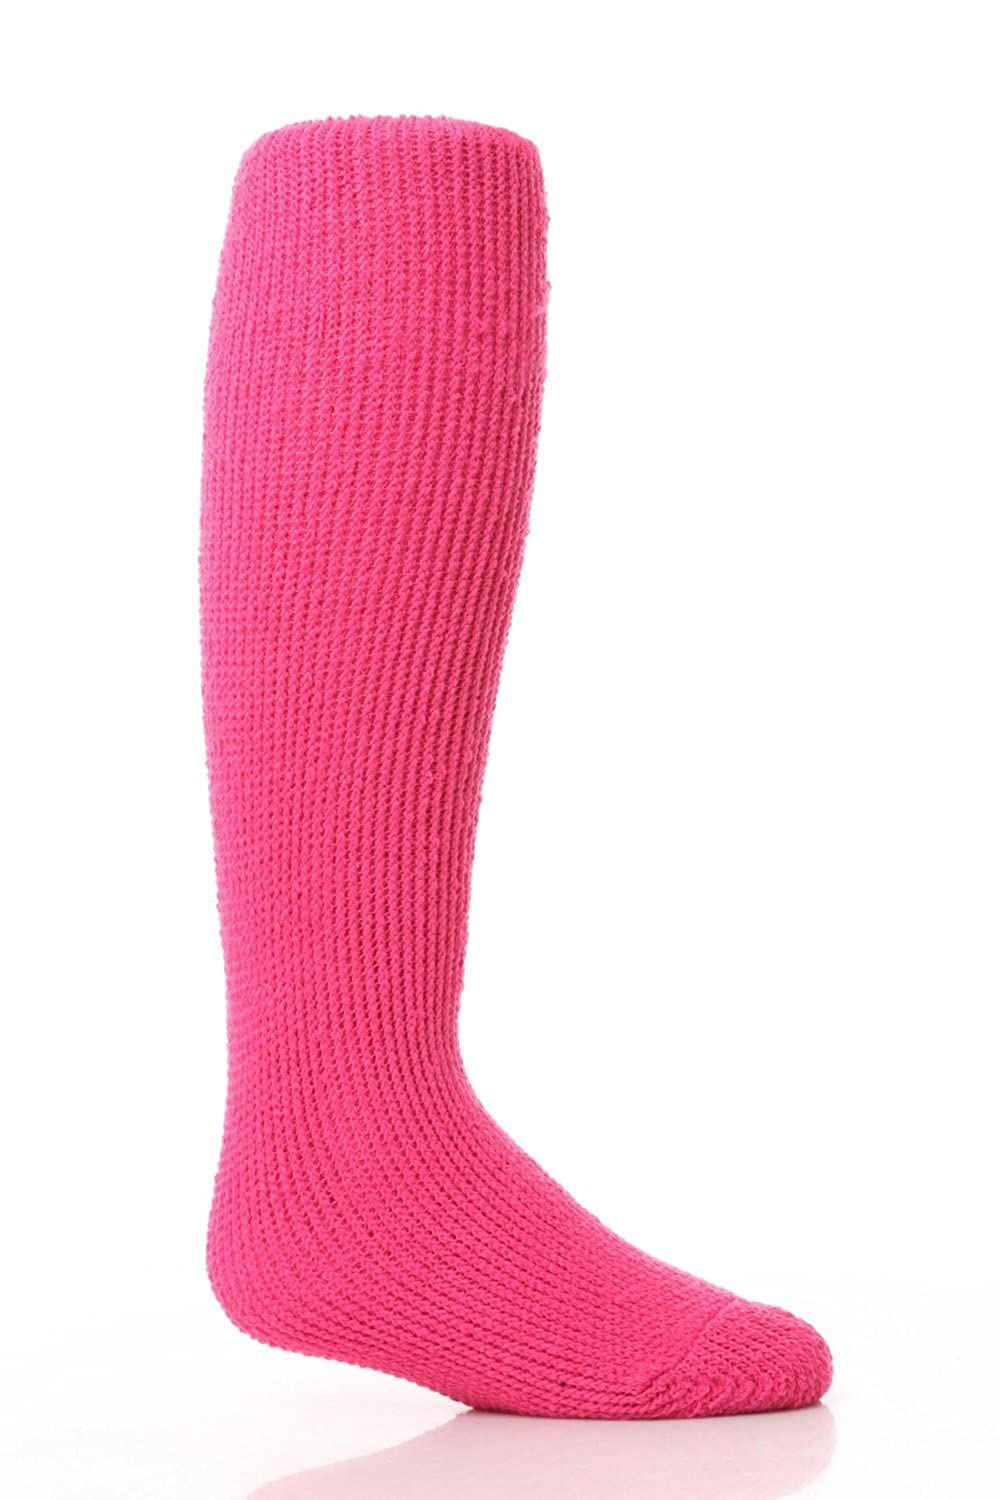 Childrens Heat Holders The Ultimate Thermal Sock Size 9-1 Red